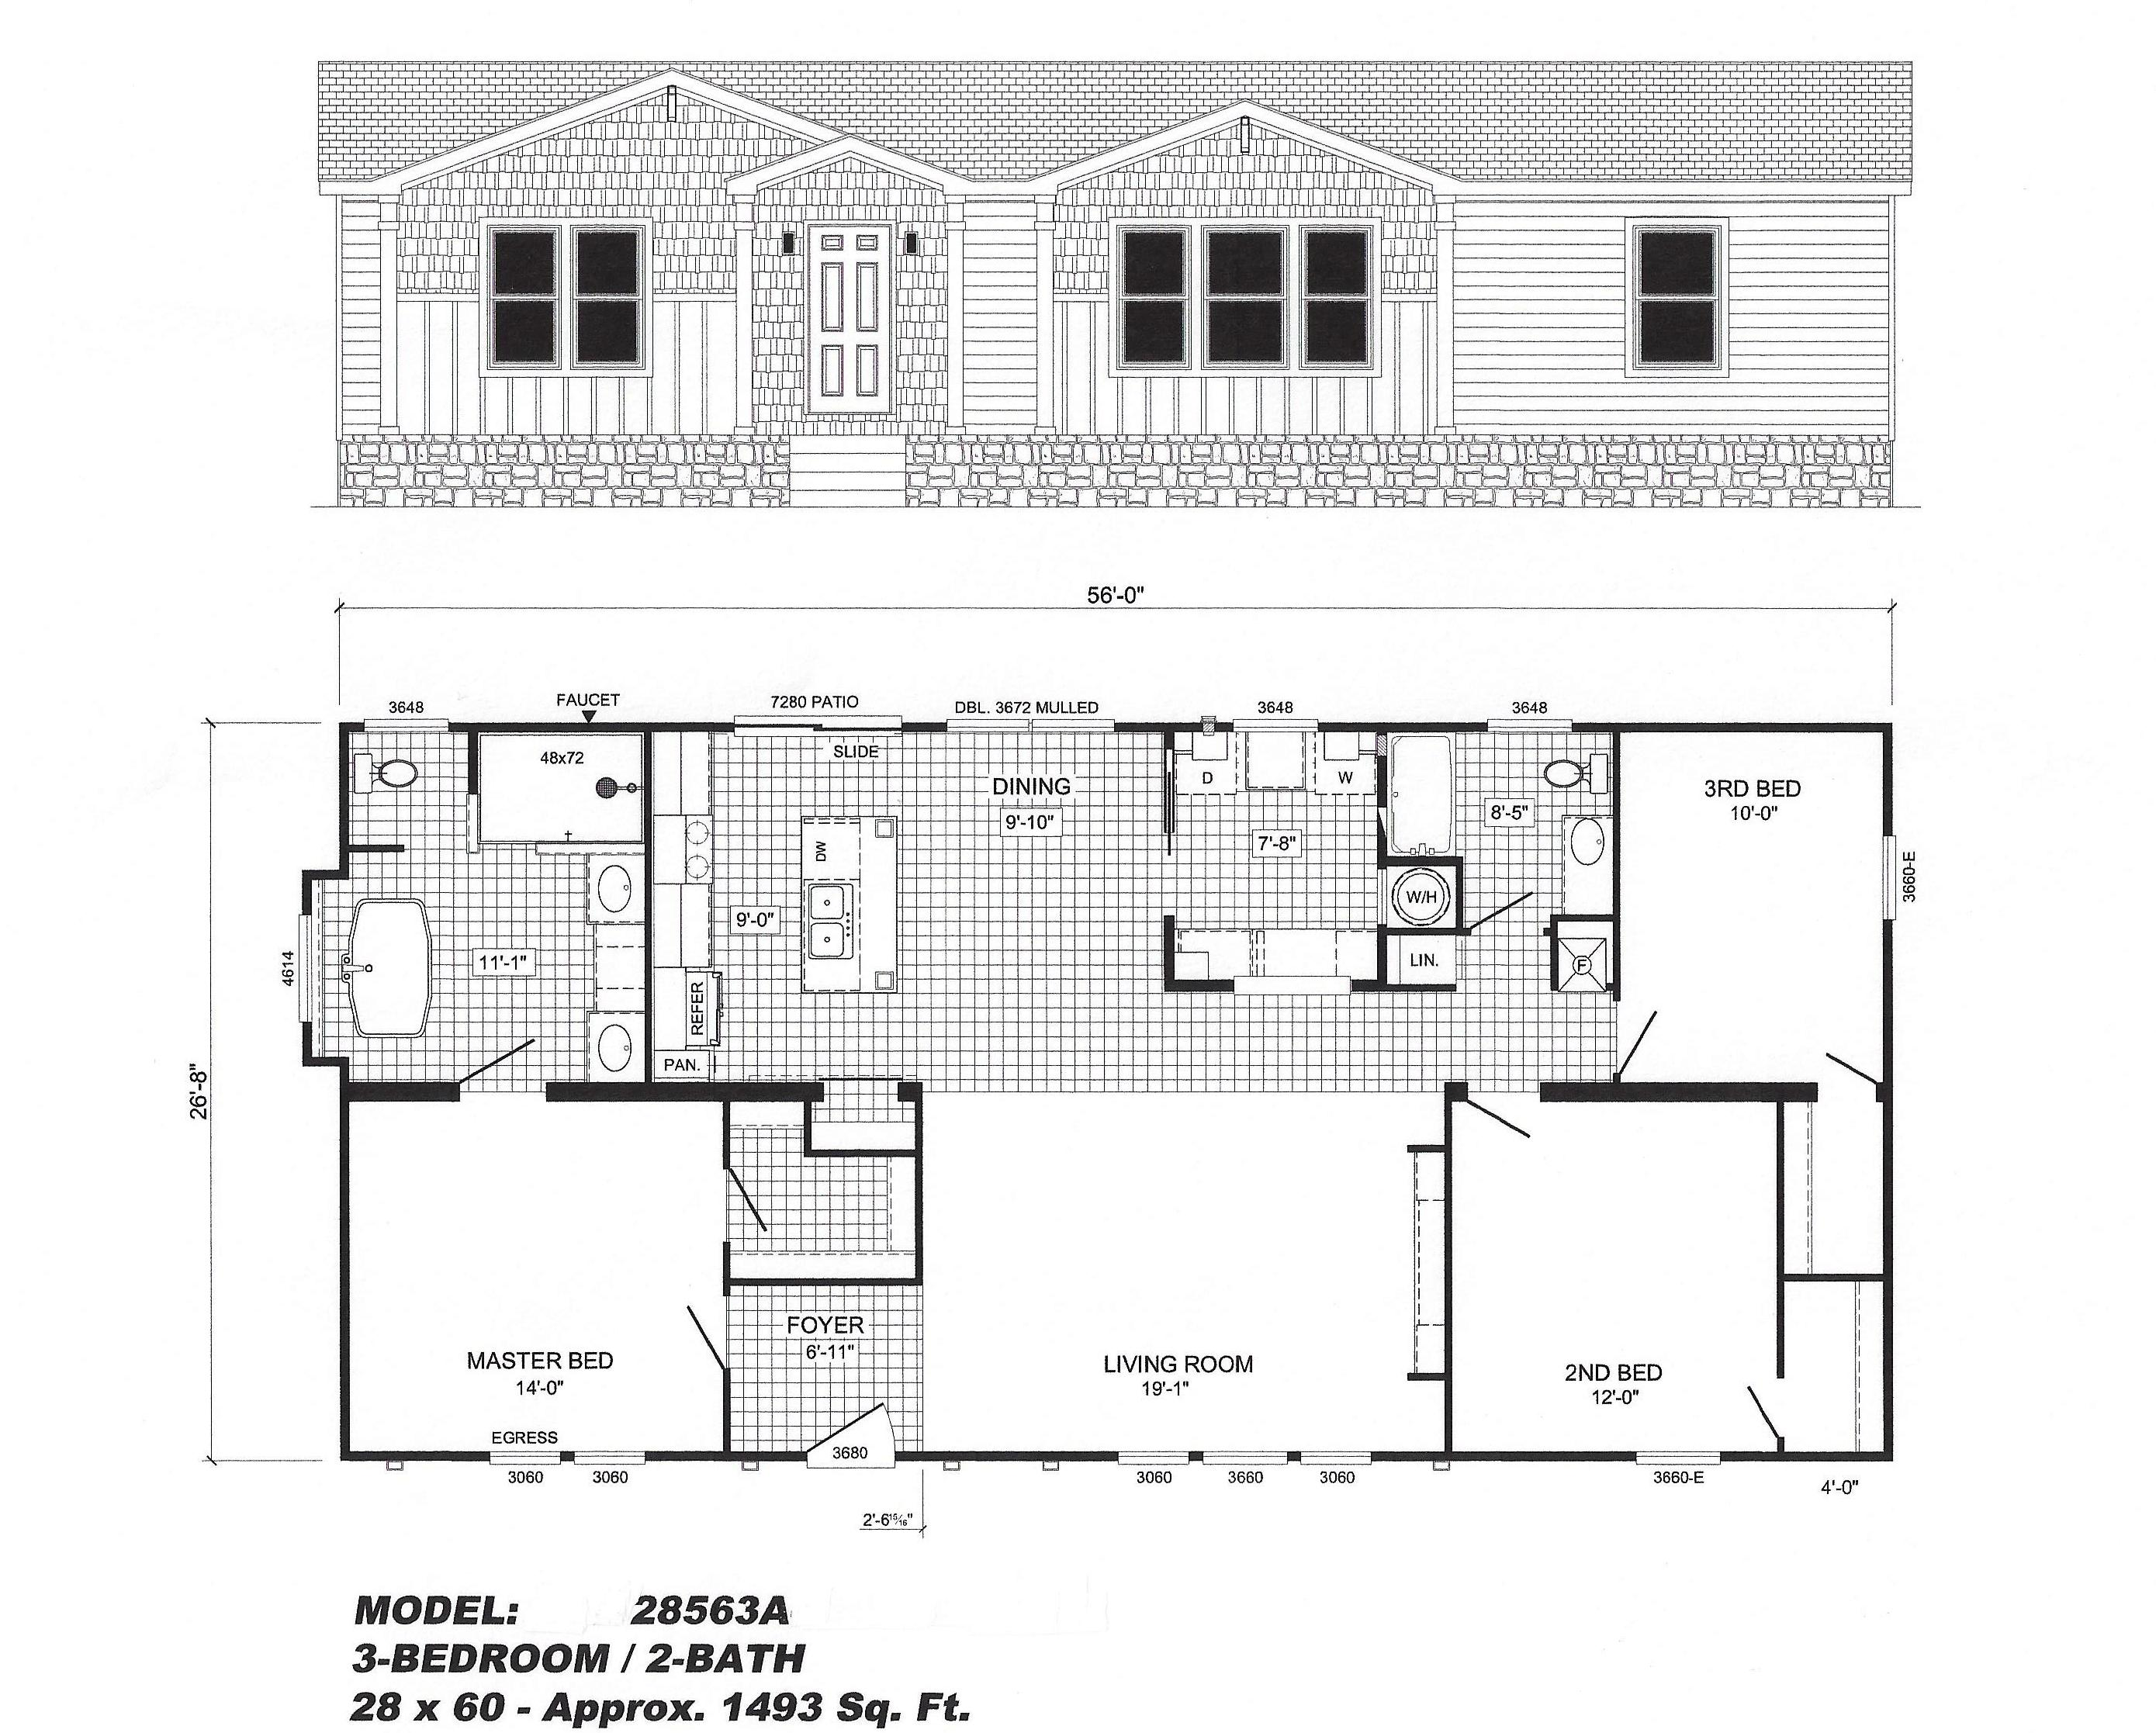 3 Bedroom Floor Plan B 2856 Pat Hawks Homes